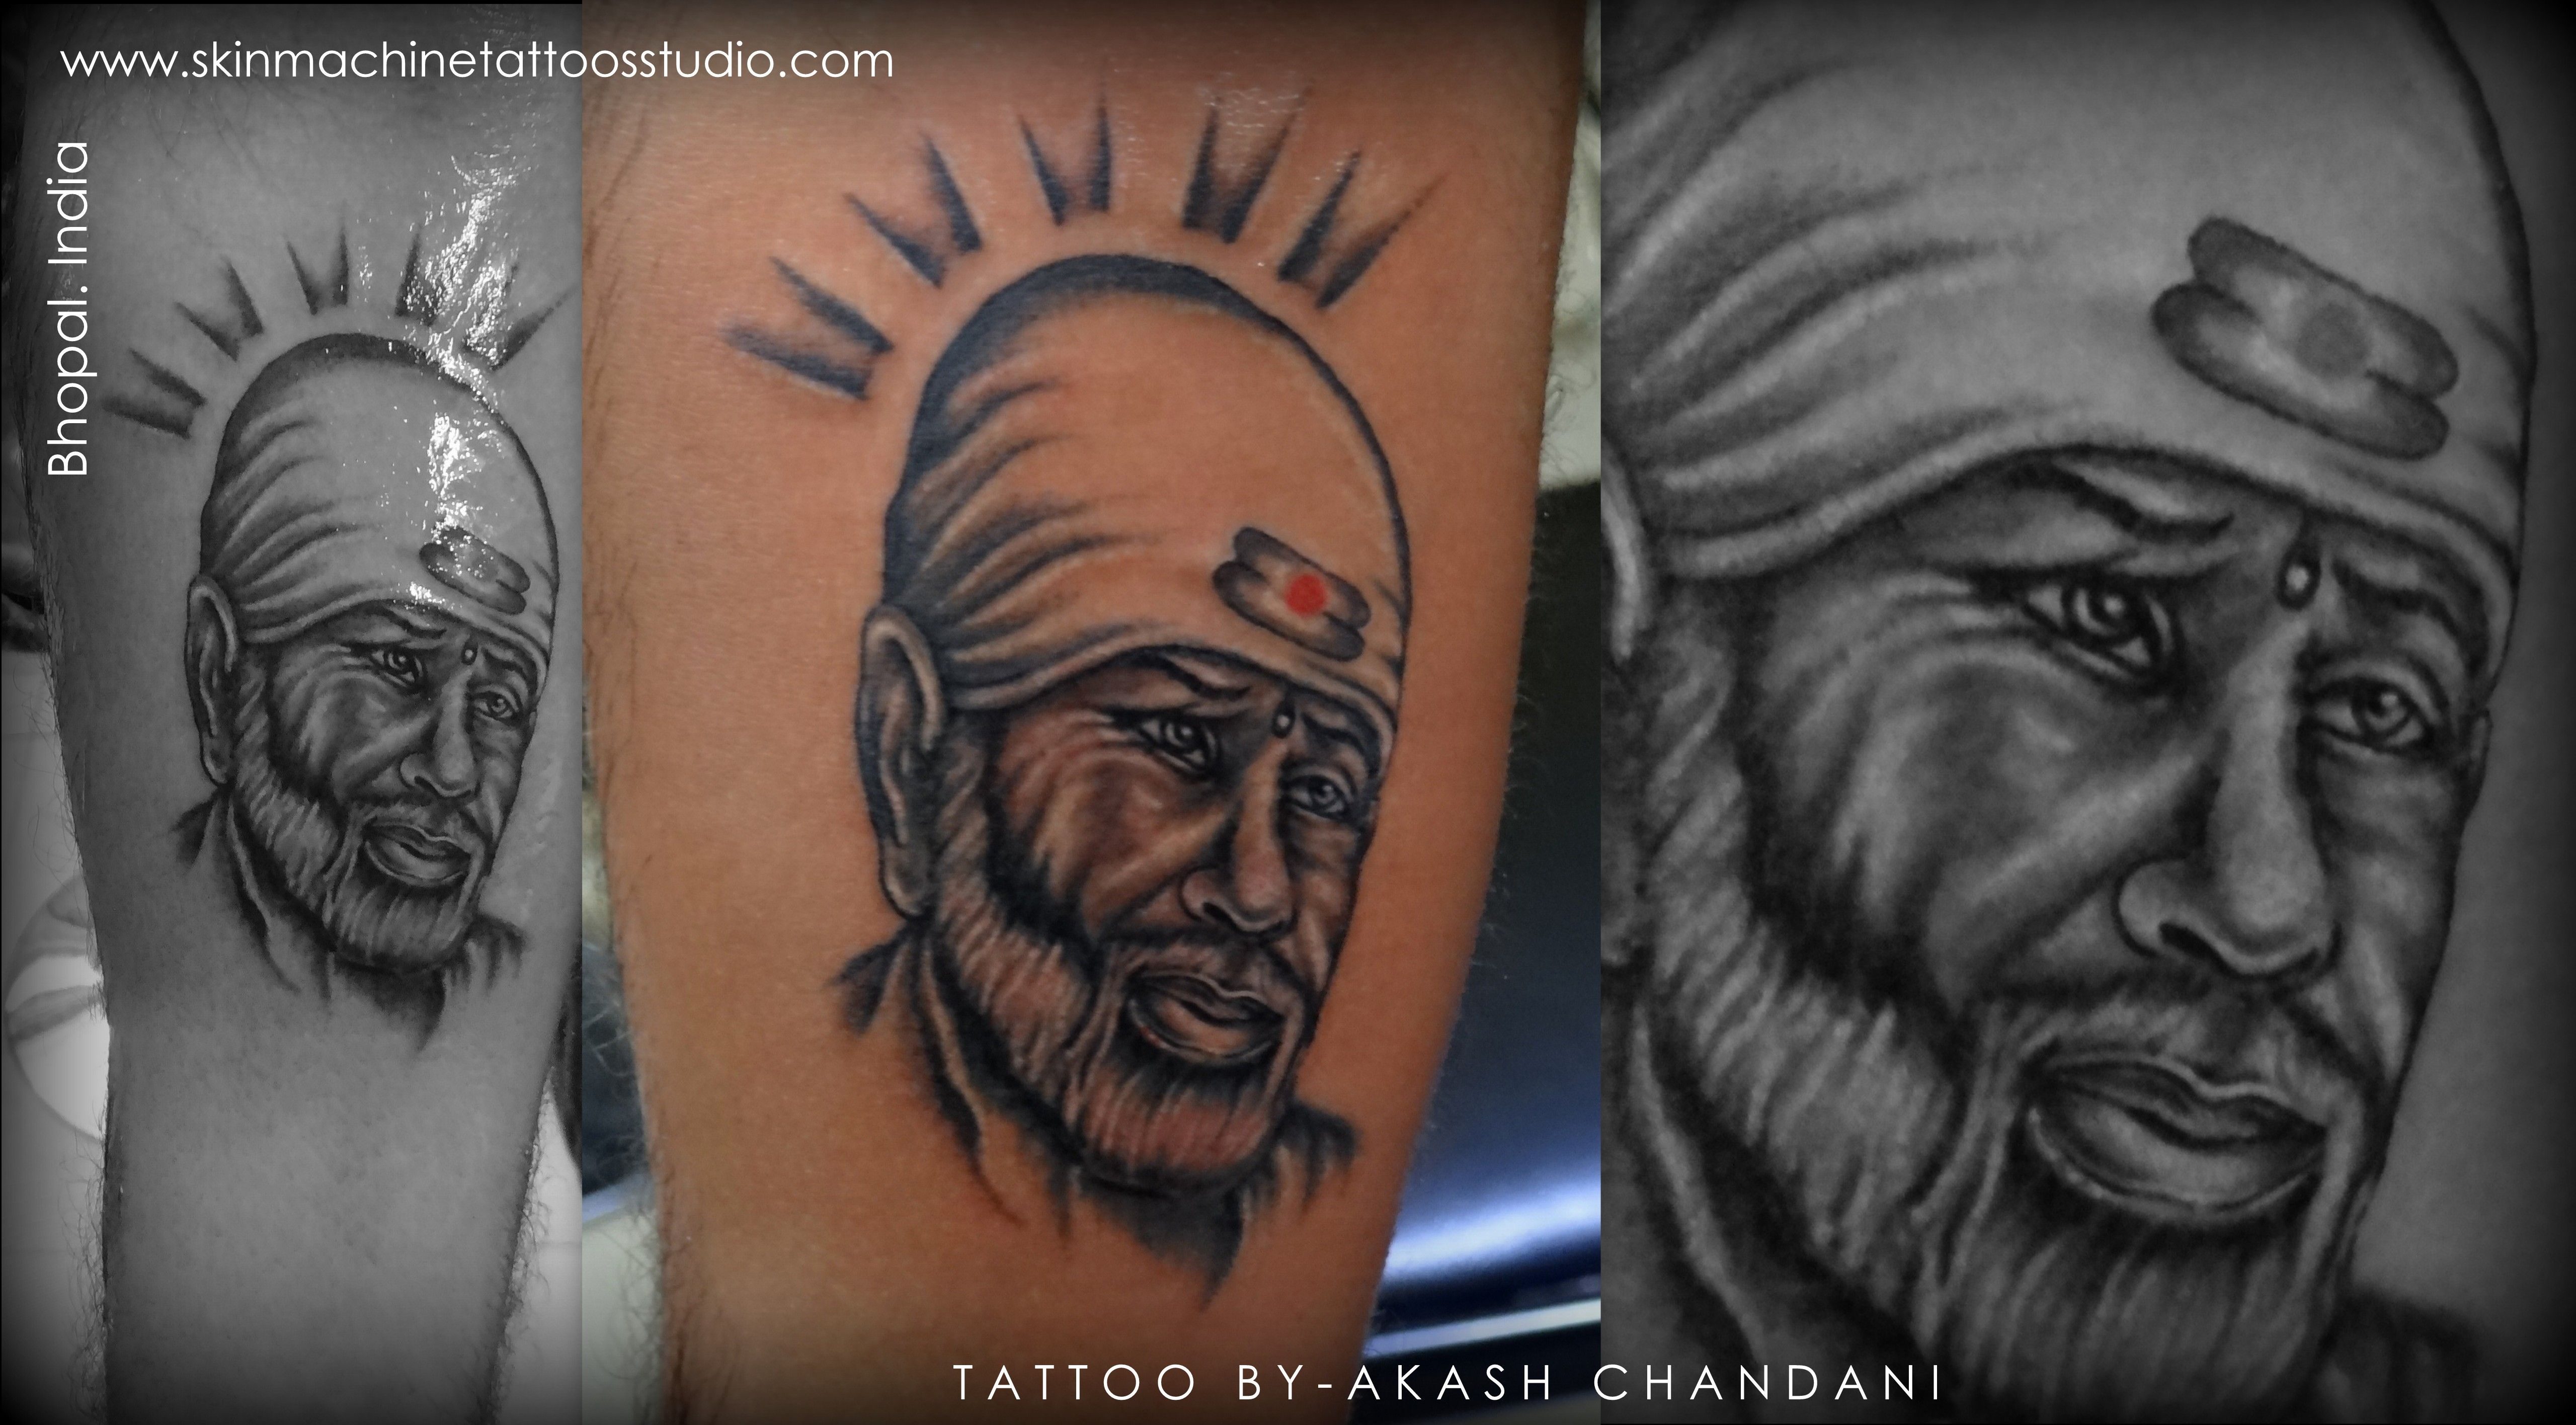 Shree Sai baba. Awesome detailed Tattoo done by Artist